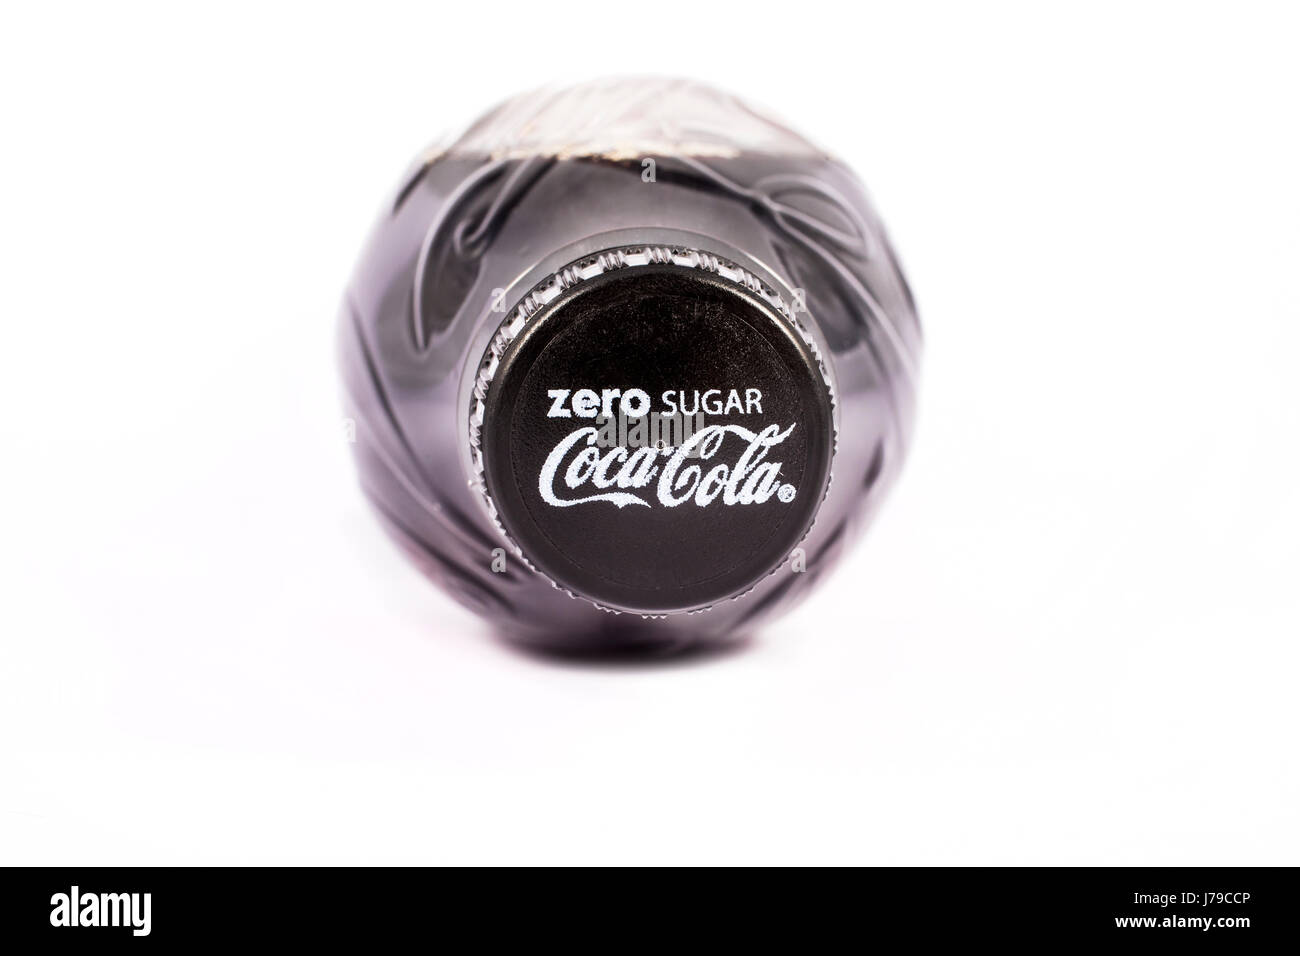 LONDON, UK - MAY 23RD 2017: A close-up shot of the top on a bottle of Zero Sugar Coca Cola, on 23rd May 2017. - Stock Image